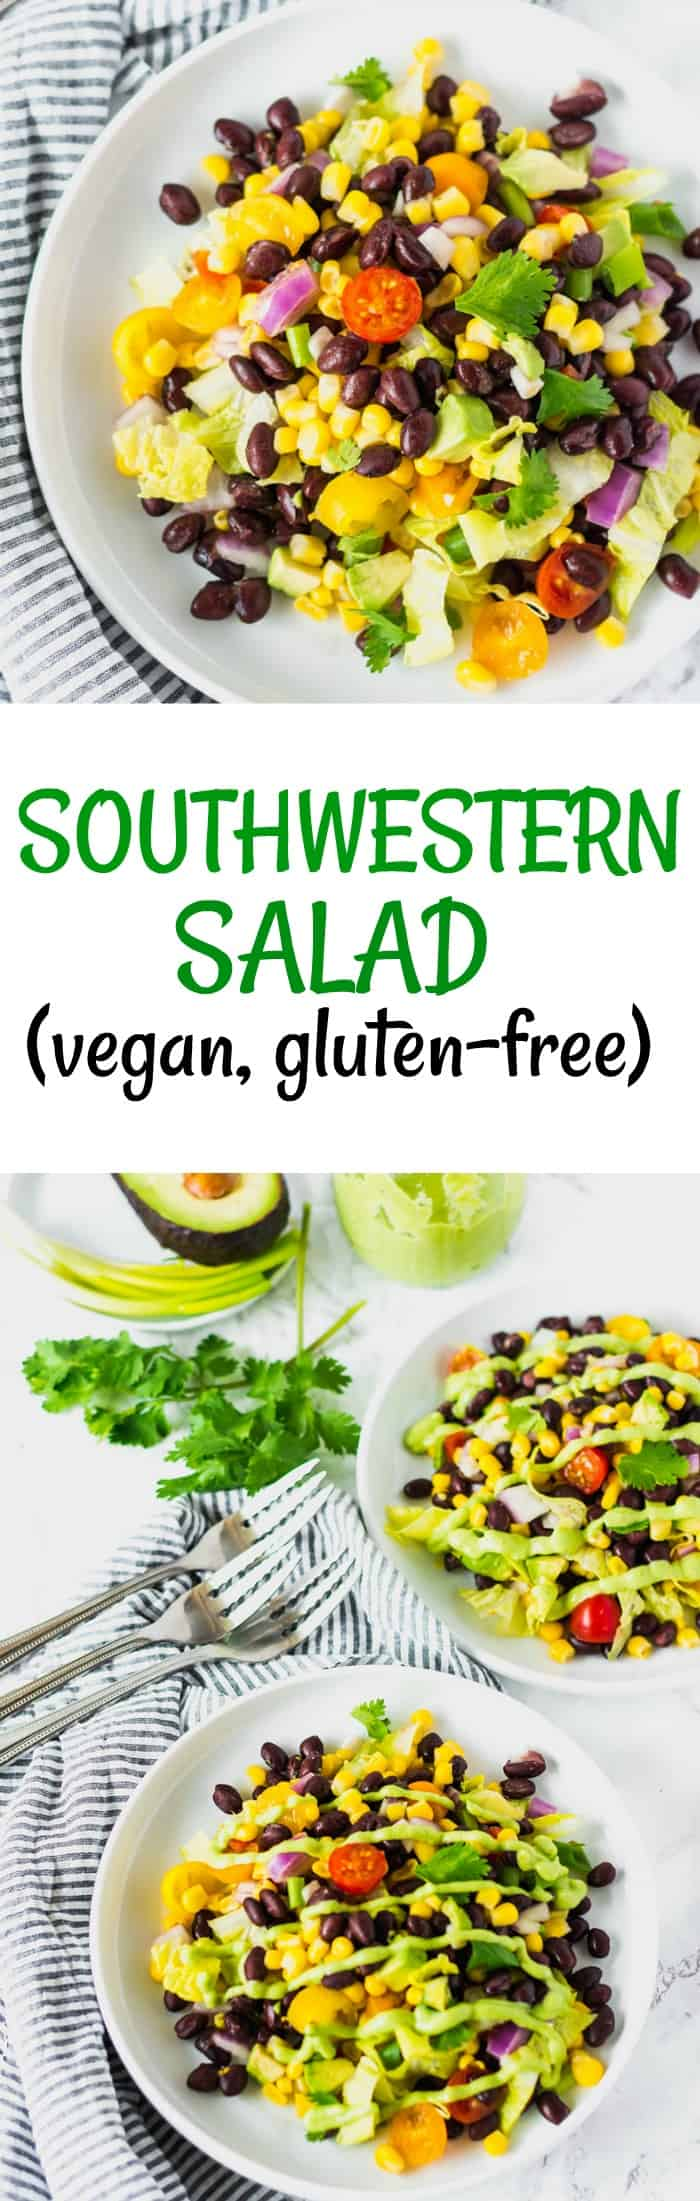 Southwestern Salad with Avocado Dressing